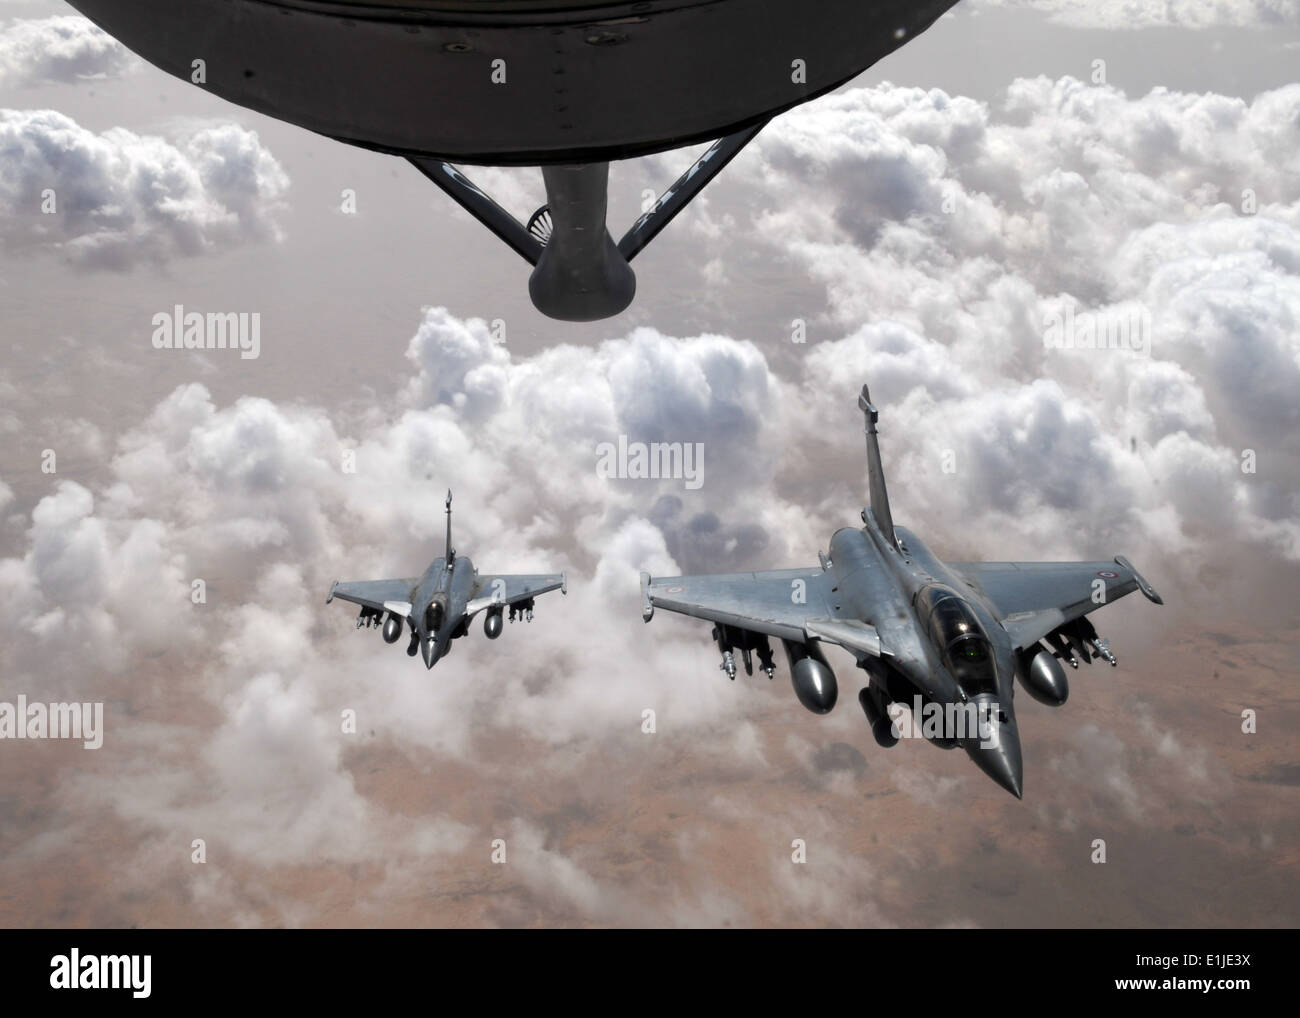 Two French Rafale fighter aircraft prepare to break formation after refueling with a KC-135 Stratotanker April 23, 2013, over M - Stock Image